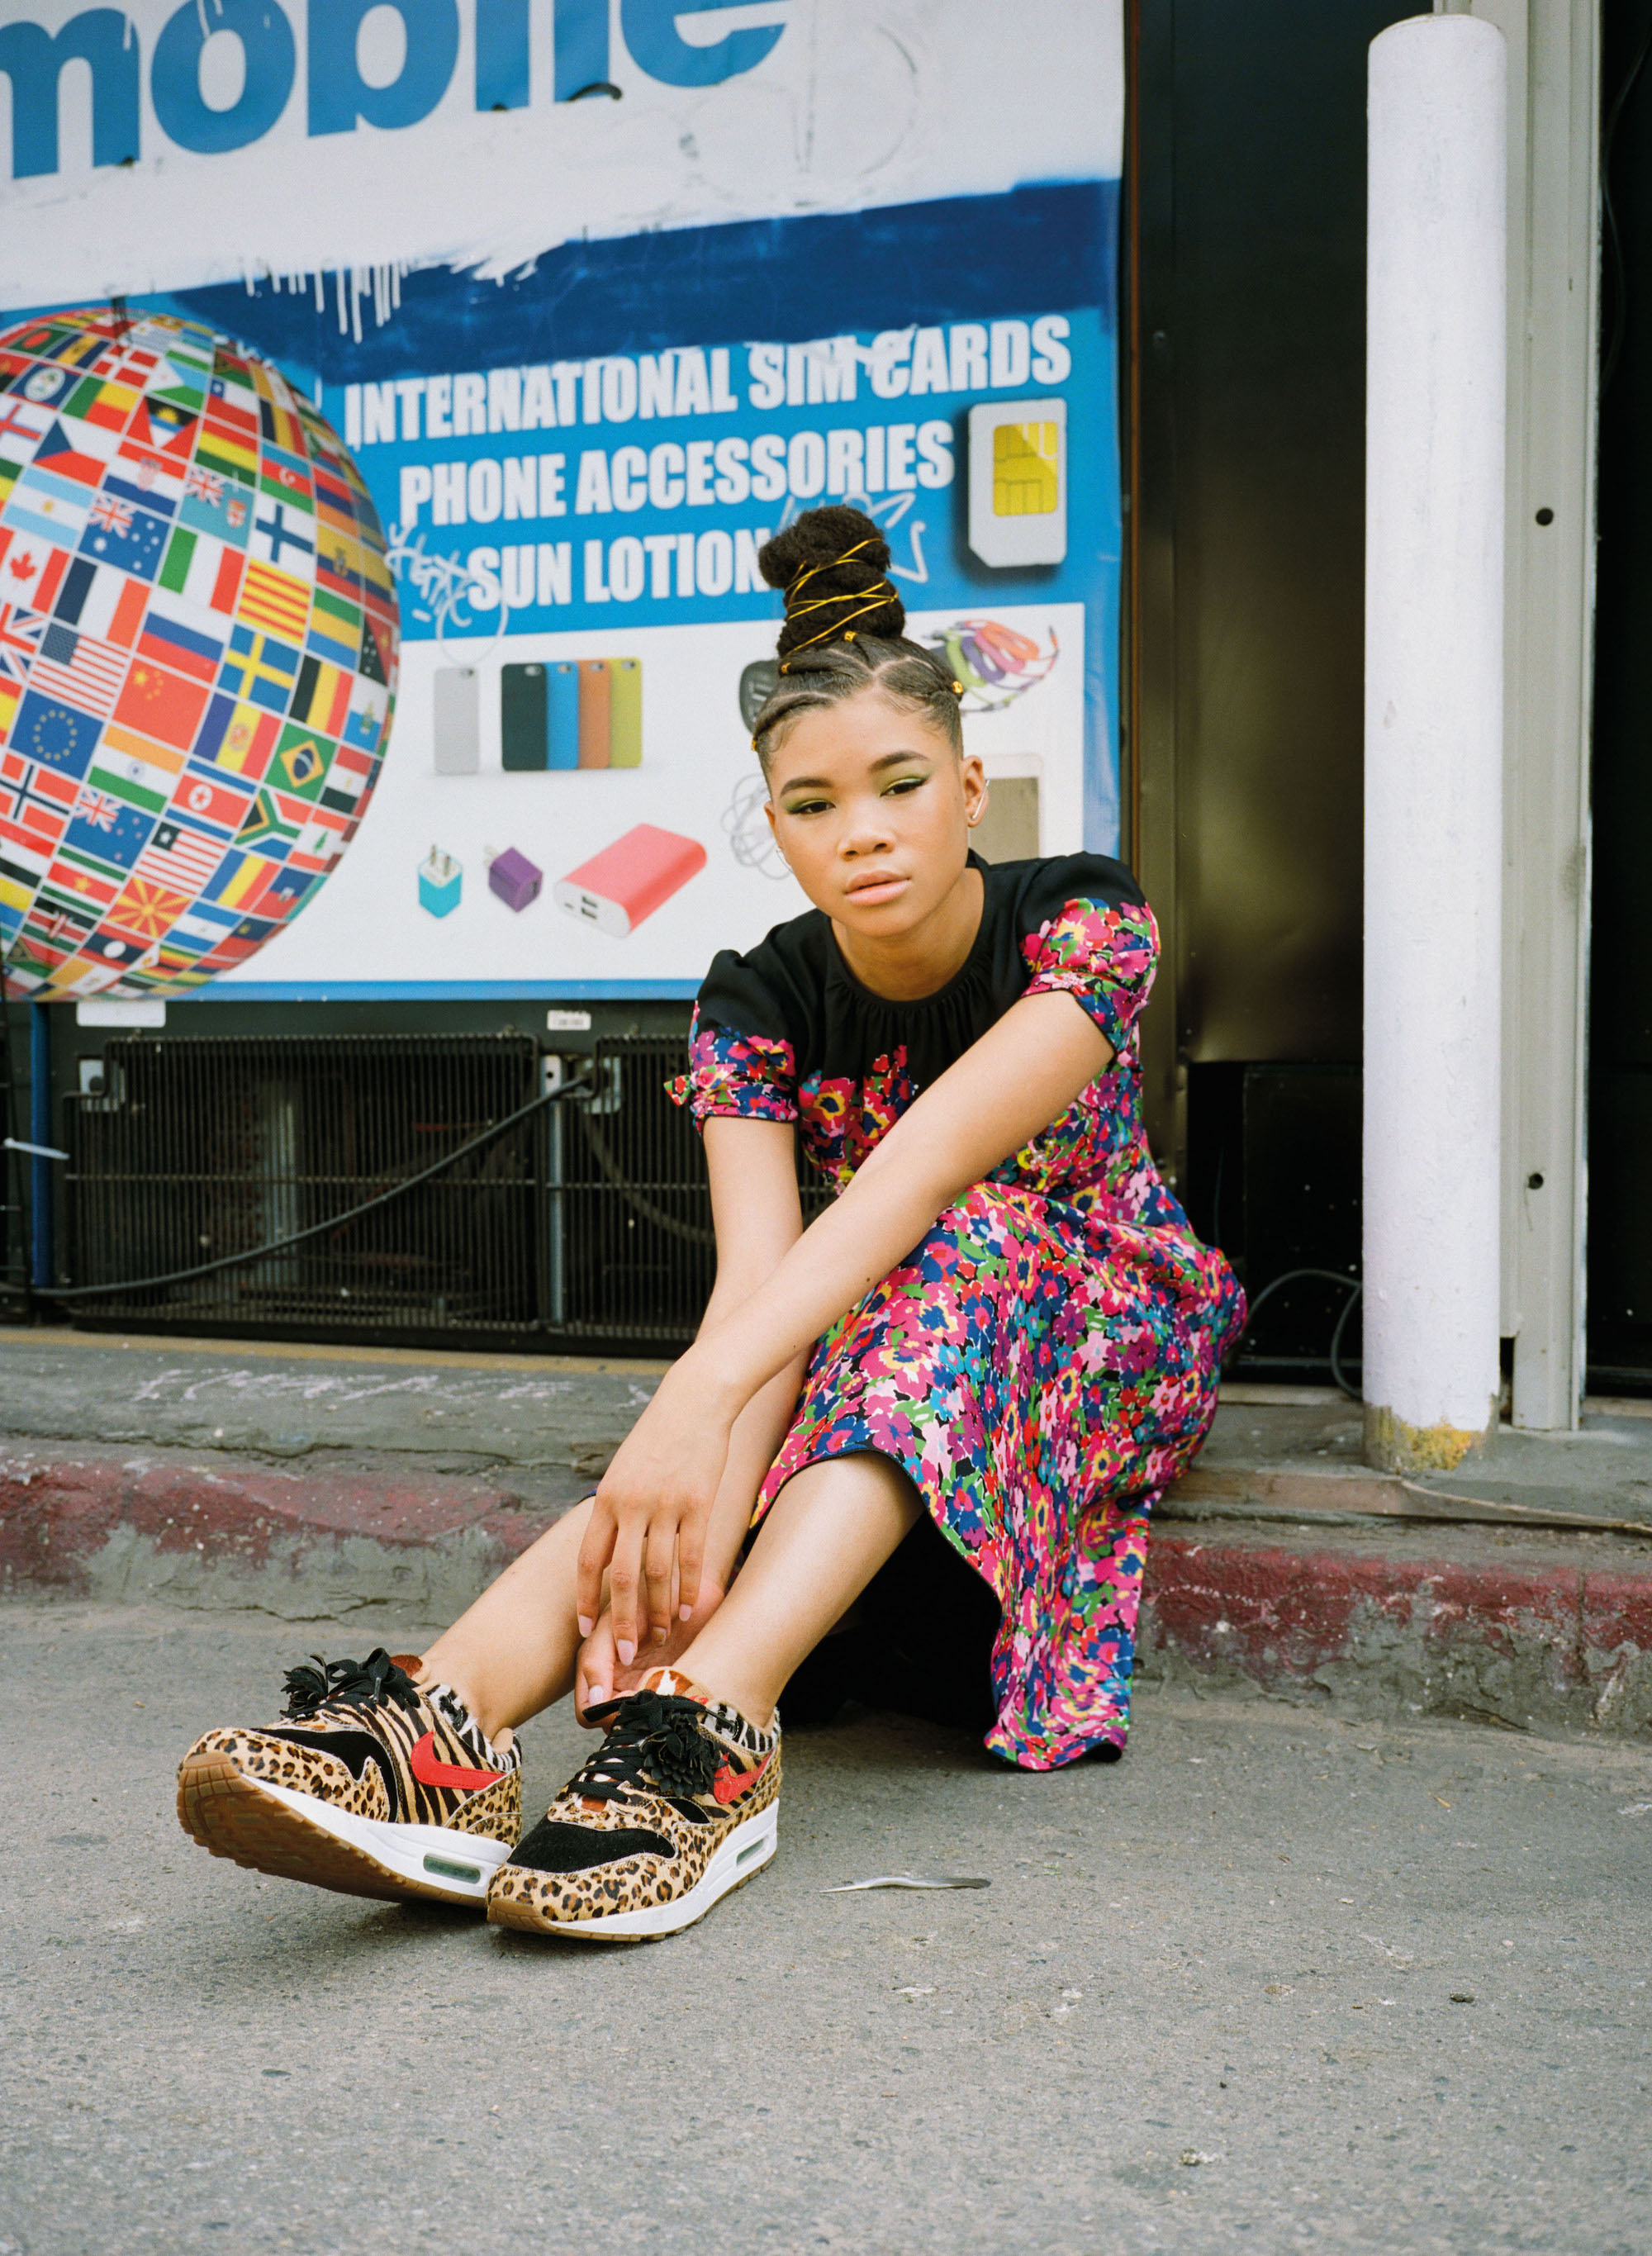 Actress Storm Reid in Summer 19 issue of Wonderland floral dress